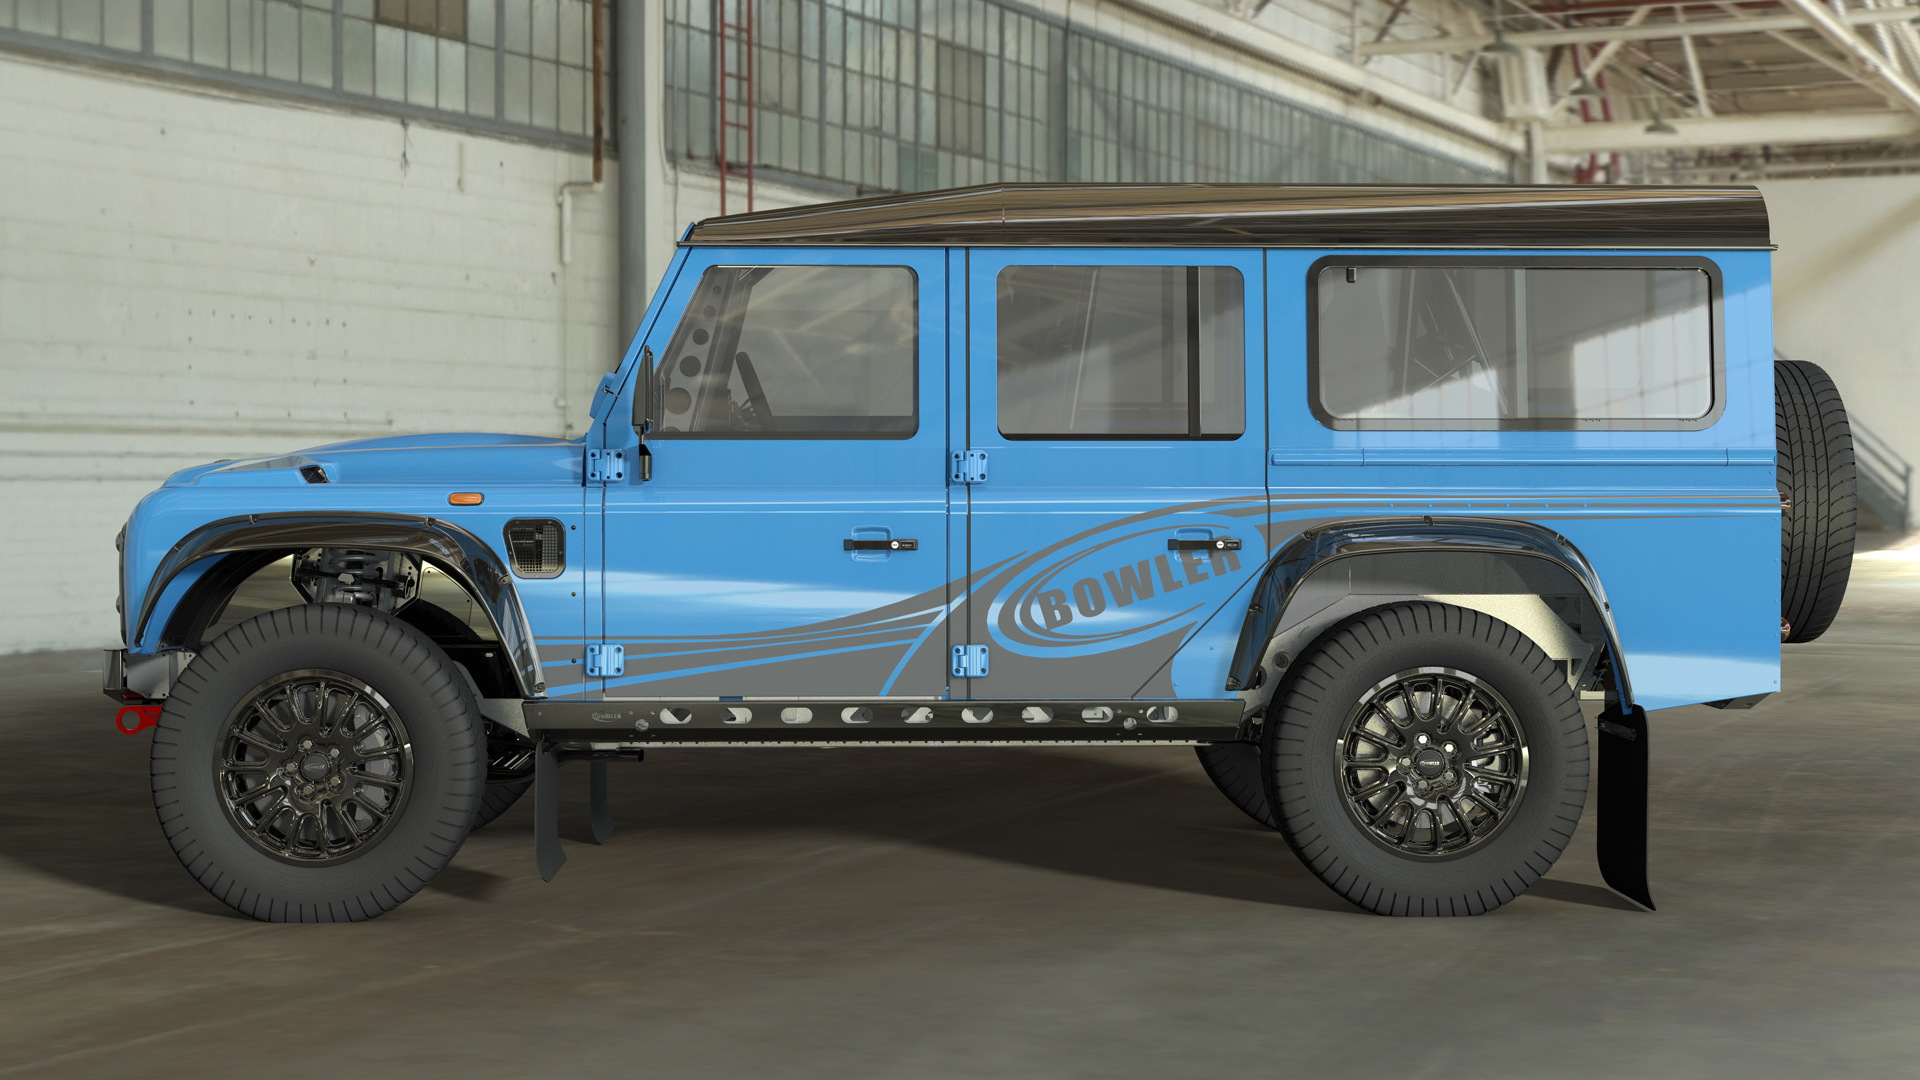 Bowler to build performance SUVs using the original Land Rover Defender 110 body